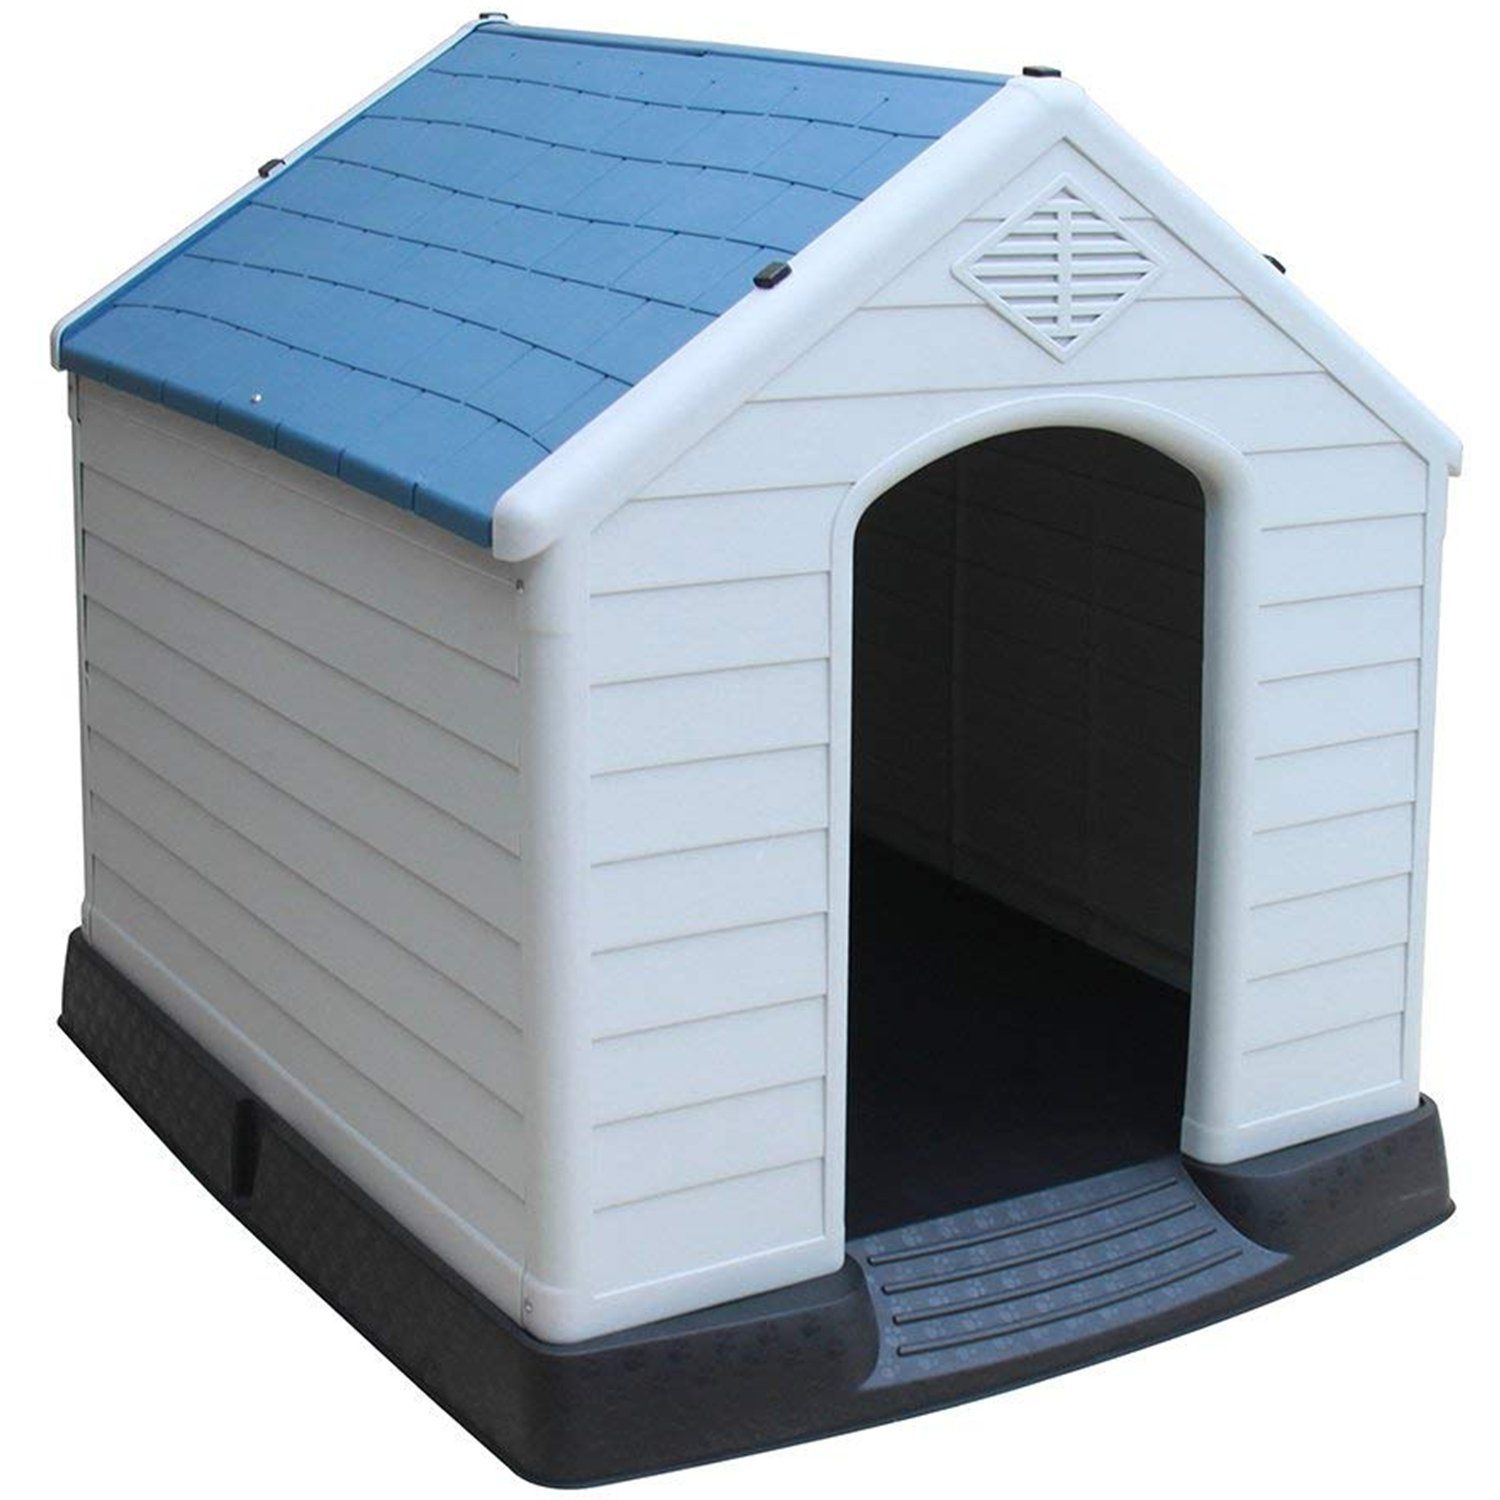 Sengu Plastic Dog House Waterproof Indoor And Outdoor Pet Shelter